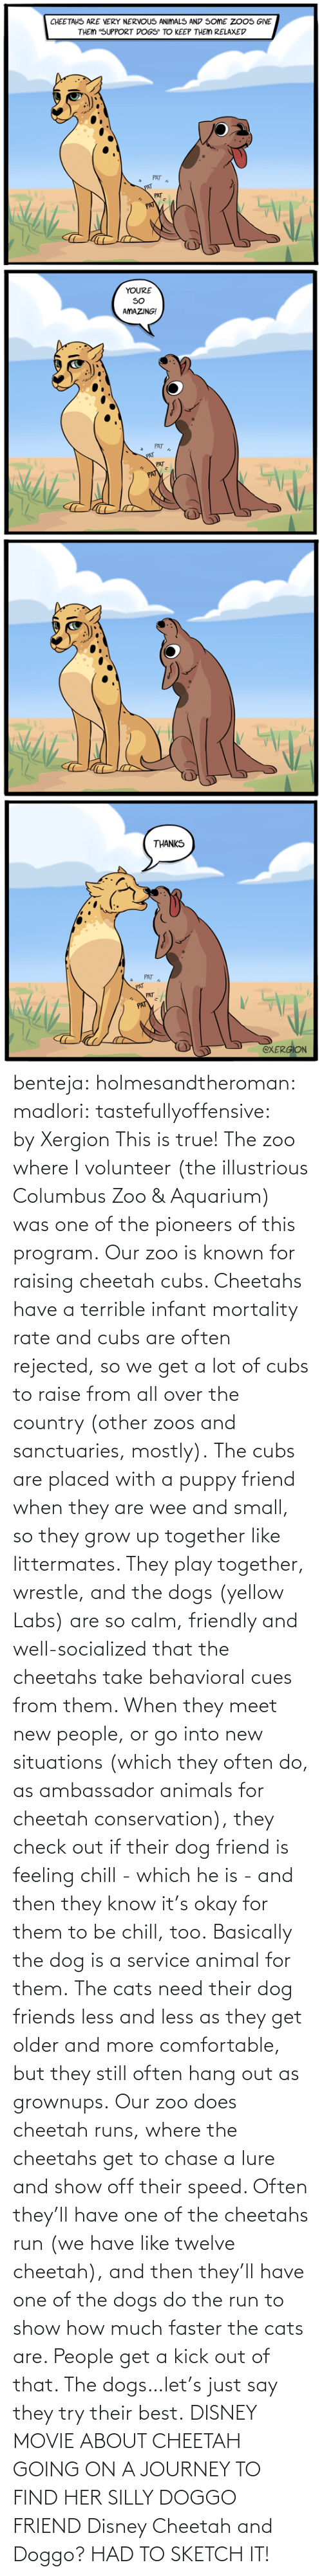 lure: benteja:  holmesandtheroman:  madlori:  tastefullyoffensive: by Xergion This is true! The zoo where I volunteer (the illustrious Columbus Zoo & Aquarium) was one of the pioneers of this program. Our zoo is known for raising cheetah cubs. Cheetahs have a terrible infant mortality rate and cubs are often rejected, so we get a lot of cubs to raise from all over the country (other zoos and sanctuaries, mostly). The cubs are placed with a puppy friend when they are wee and small, so they grow up together like littermates. They play together, wrestle, and the dogs (yellow Labs) are so calm, friendly and well-socialized that the cheetahs take behavioral cues from them. When they meet new people, or go into new situations (which they often do, as ambassador animals for cheetah conservation), they check out if their dog friend is feeling chill - which he is - and then they know it's okay for them to be chill, too. Basically the dog is a service animal for them. The cats need their dog friends less and less as they get older and more comfortable, but they still often hang out as grownups. Our zoo does cheetah runs, where the cheetahs get to chase a lure and show off their speed. Often they'll have one of the cheetahs run (we have like twelve cheetah), and then they'll have one of the dogs do the run to show how much faster the cats are. People get a kick out of that. The dogs…let's just say they try their best.   DISNEY MOVIE ABOUT CHEETAH GOING ON A JOURNEY TO FIND HER SILLY DOGGO FRIEND  Disney Cheetah and Doggo? HAD TO SKETCH IT!